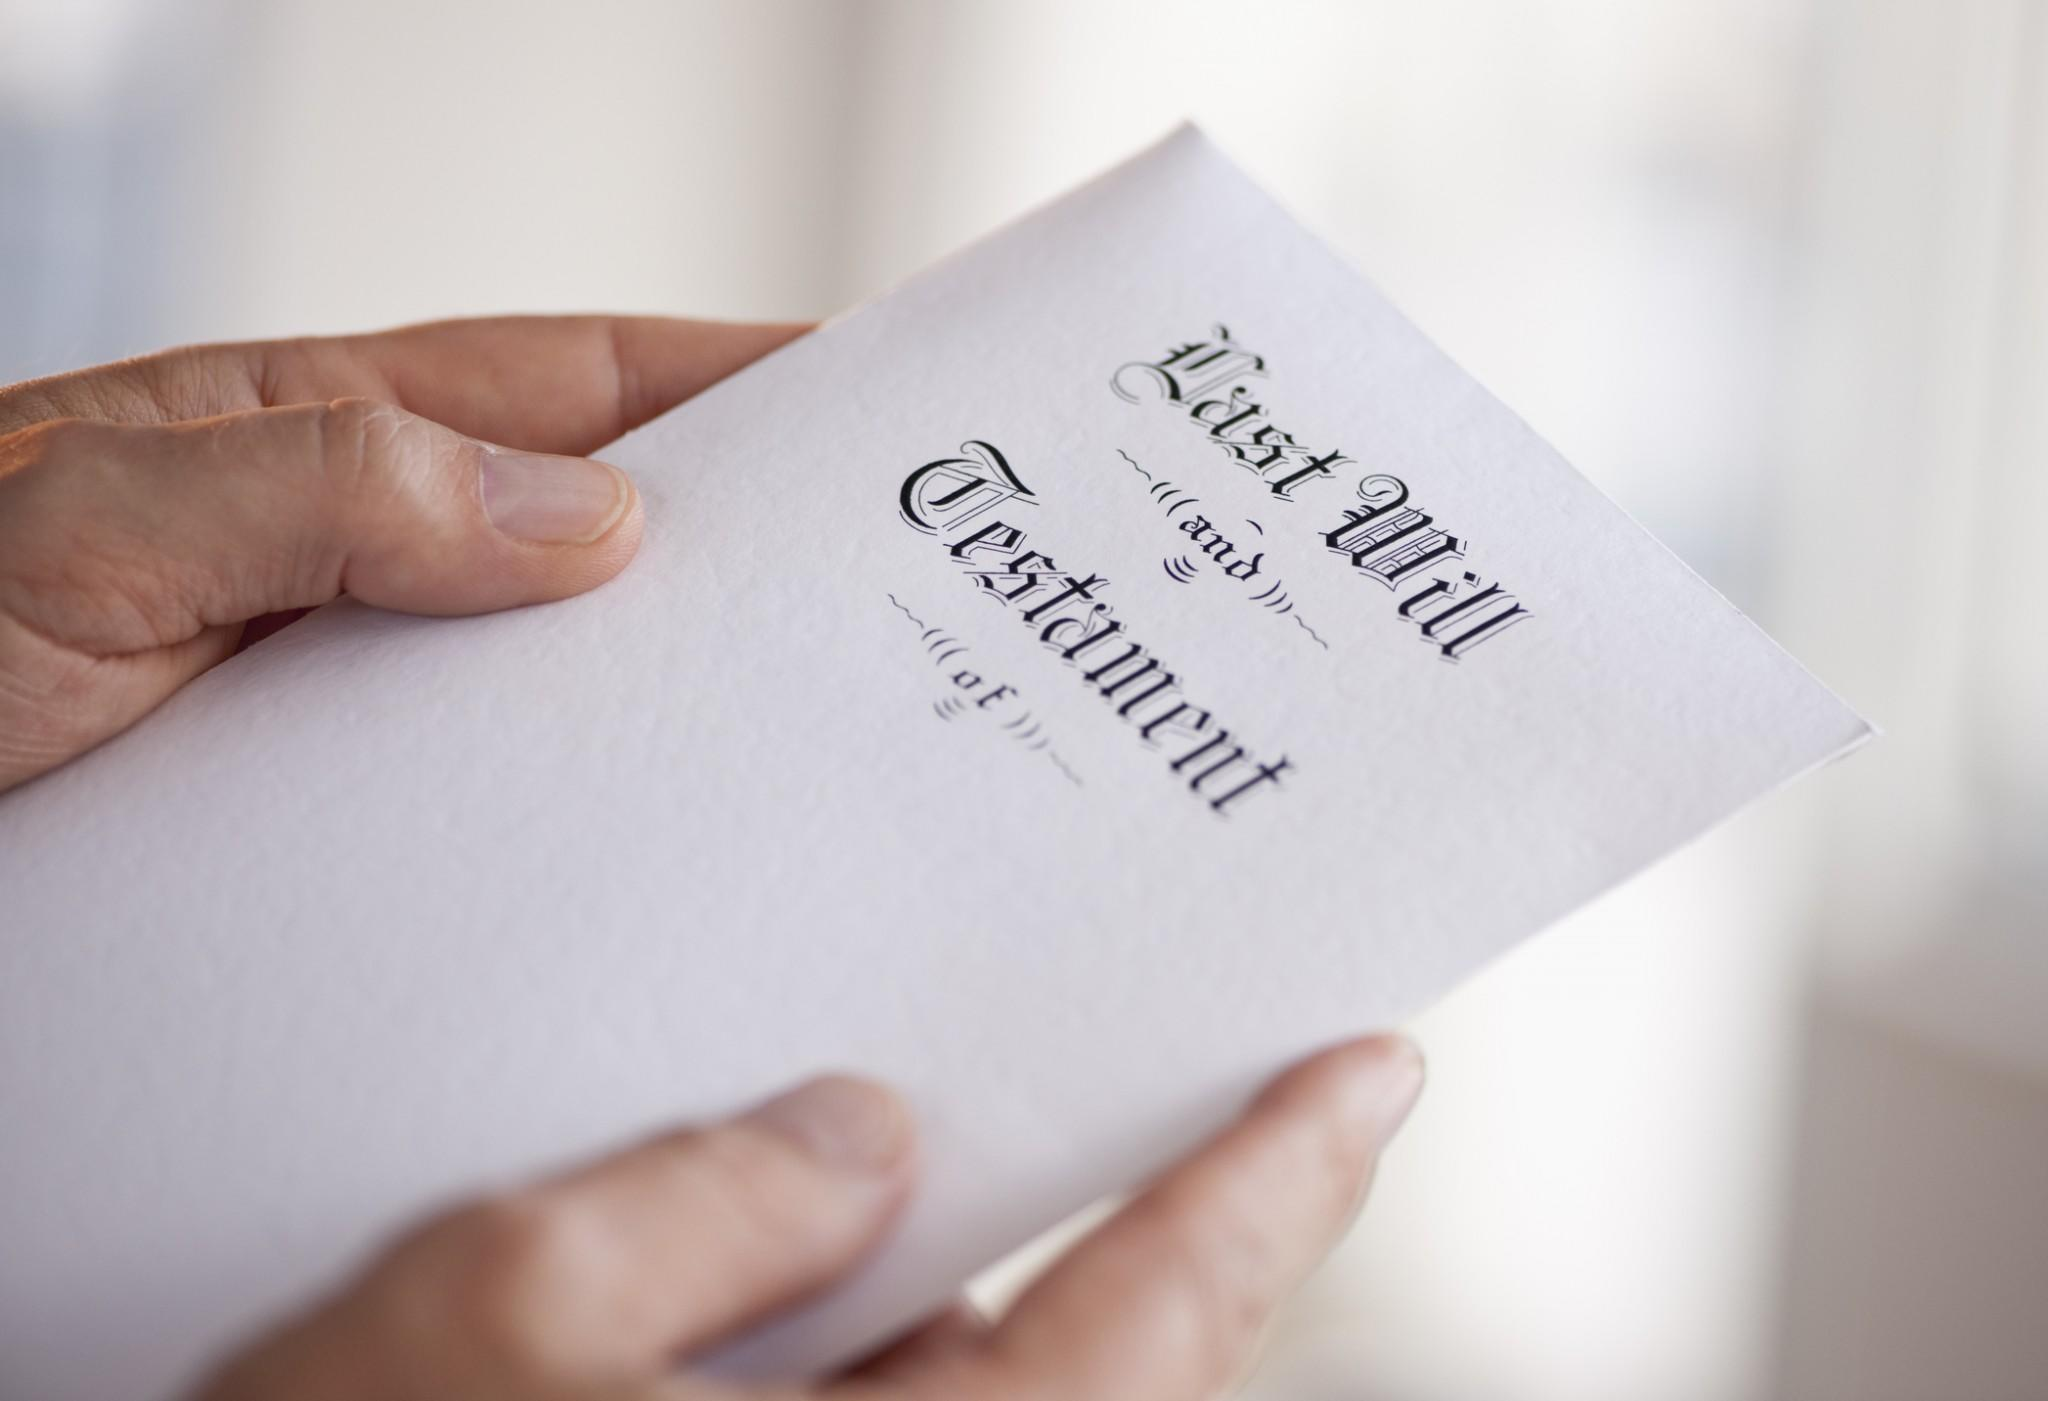 do you need a will Many people don't really enjoy thinking about their impending passing from this earth, which means that questions about wills, trusts, and estate distribution can be disconcerting still, it's smart to consider what will happen to your estate and your sentimental belongings at your passing.